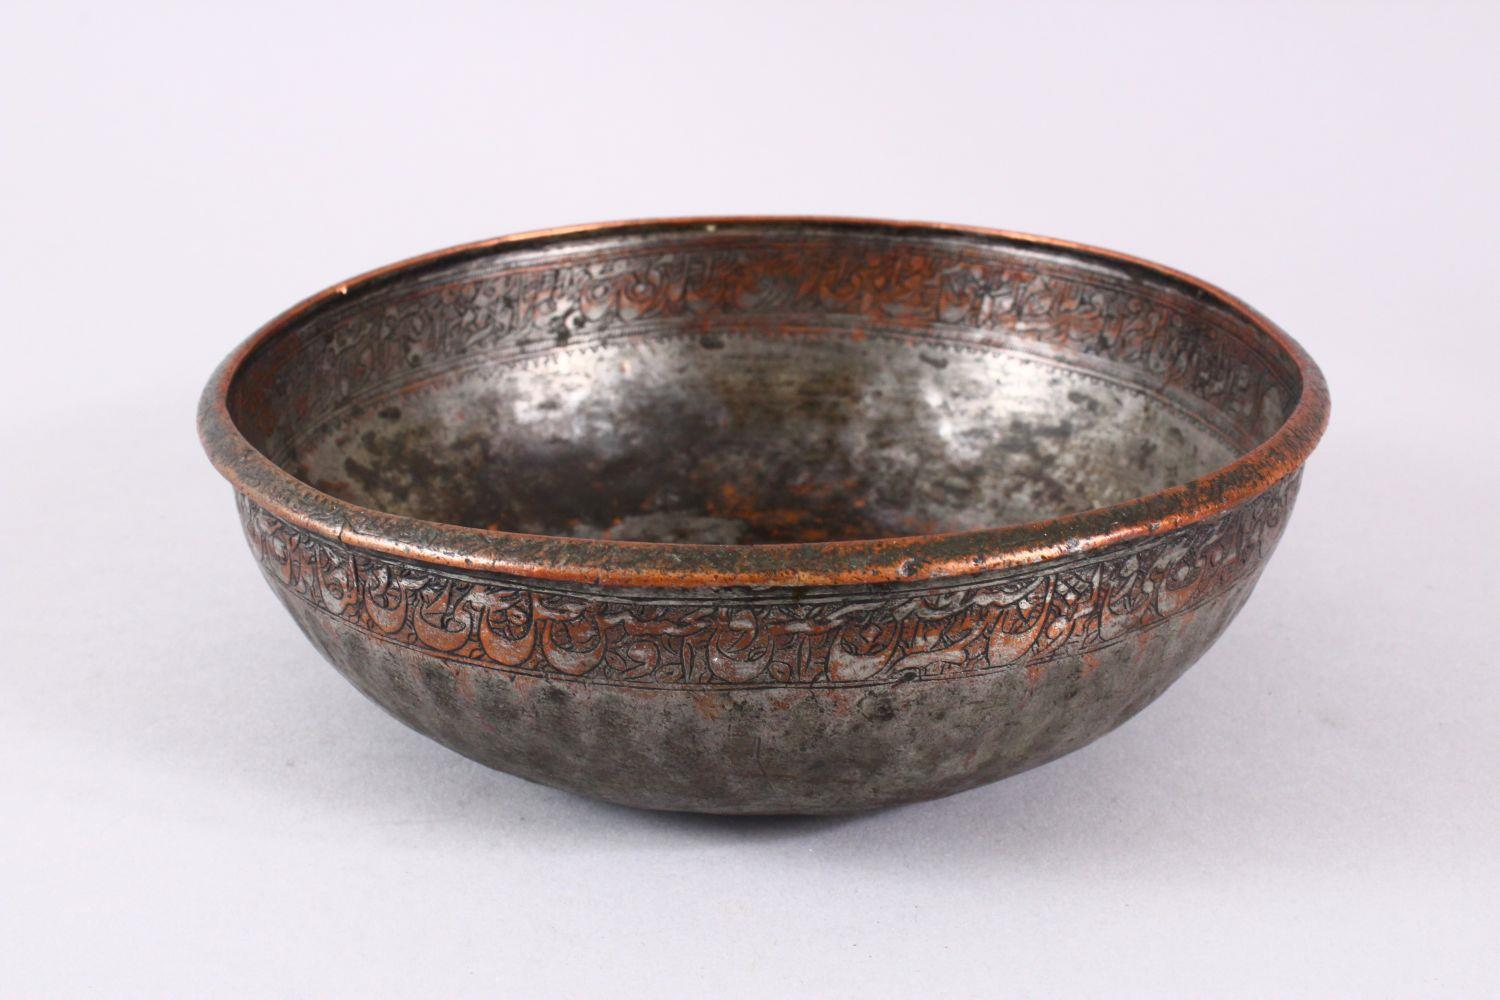 A UNUSUAL ISLAMIC TINNED HAMMERED COPPER CALLIGRAPHIC BOWL, decorated with interior & exterior bands - Image 2 of 8